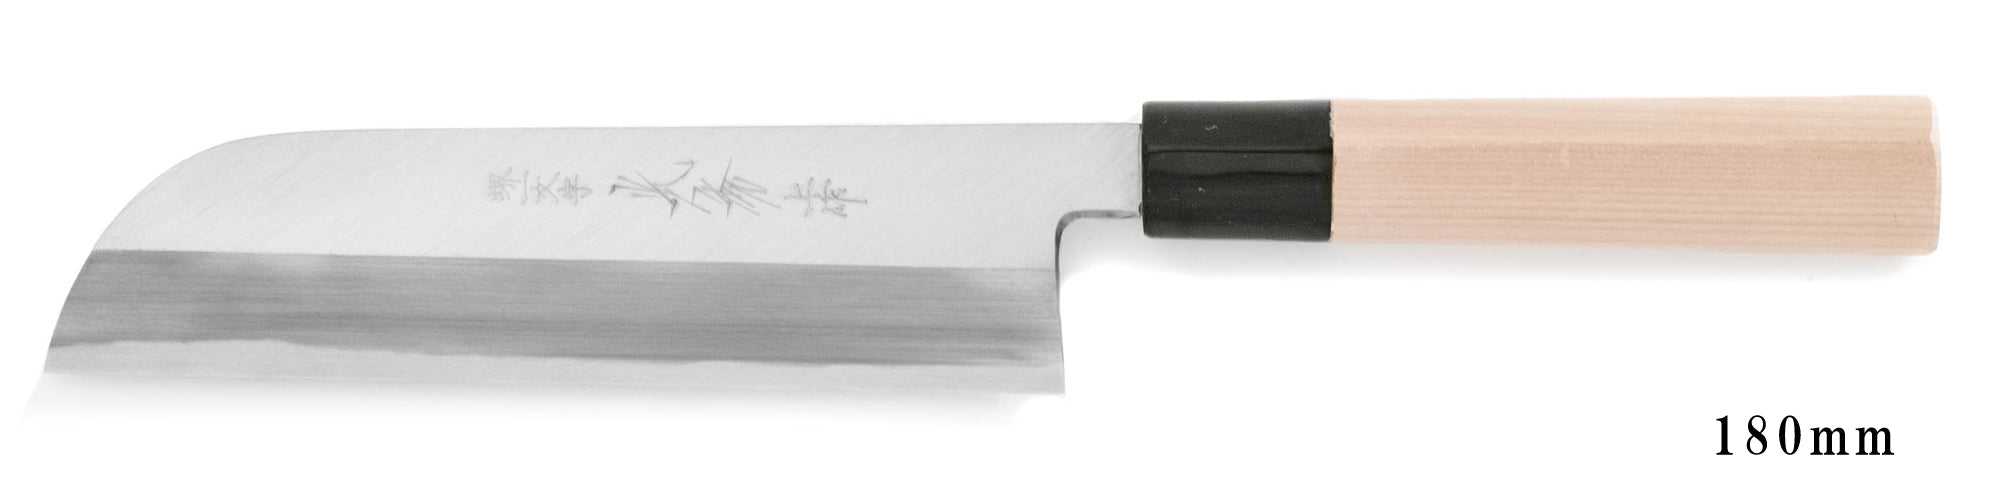 White Steel Kasumi Kama Usuba Knife left-hander 180mm